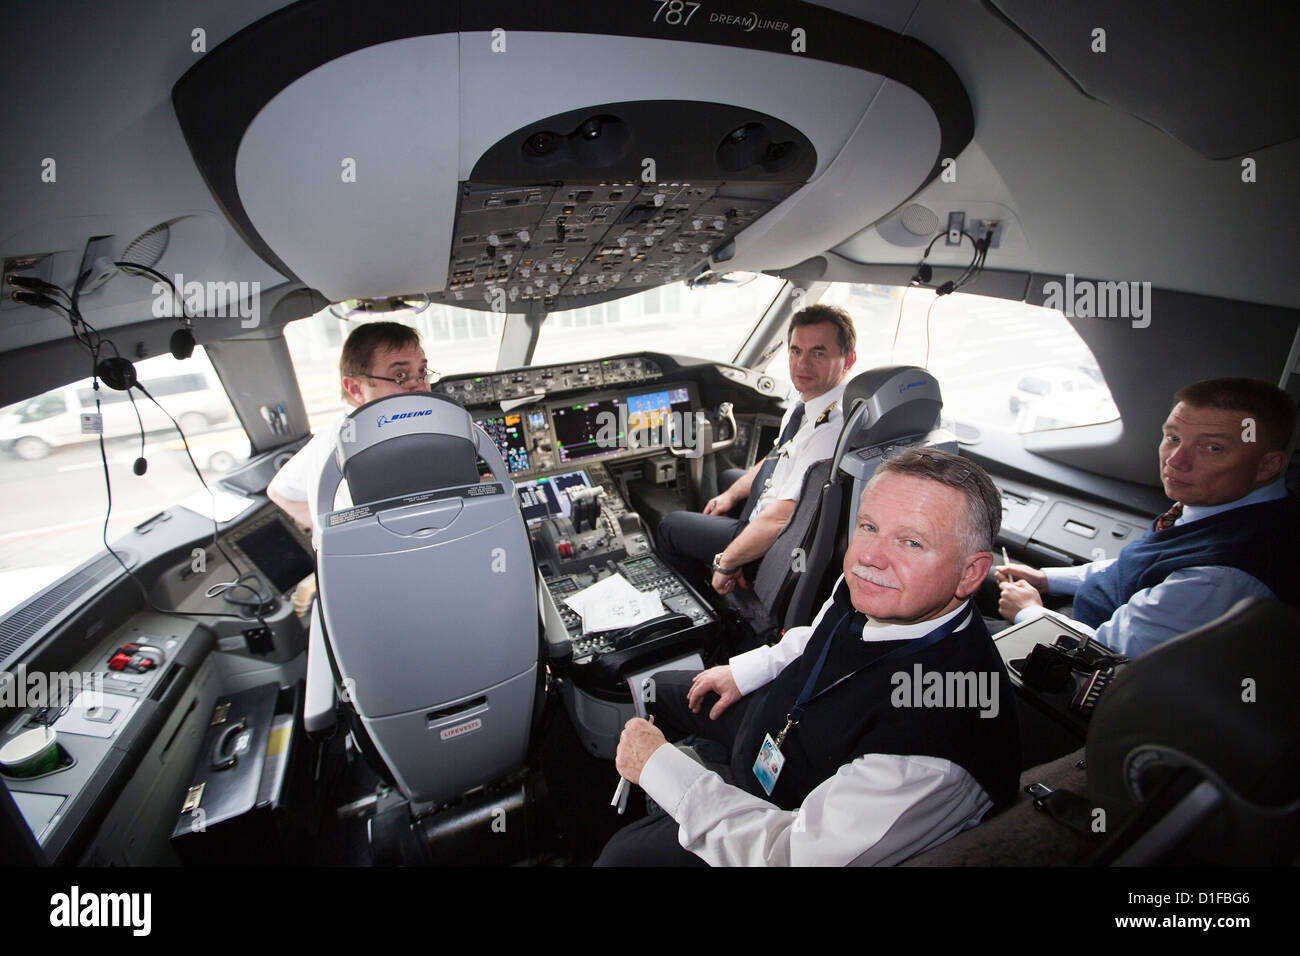 Interieur, Boeing 787 Dreamliner Stockfoto, Bild: 52584118 - Alamy